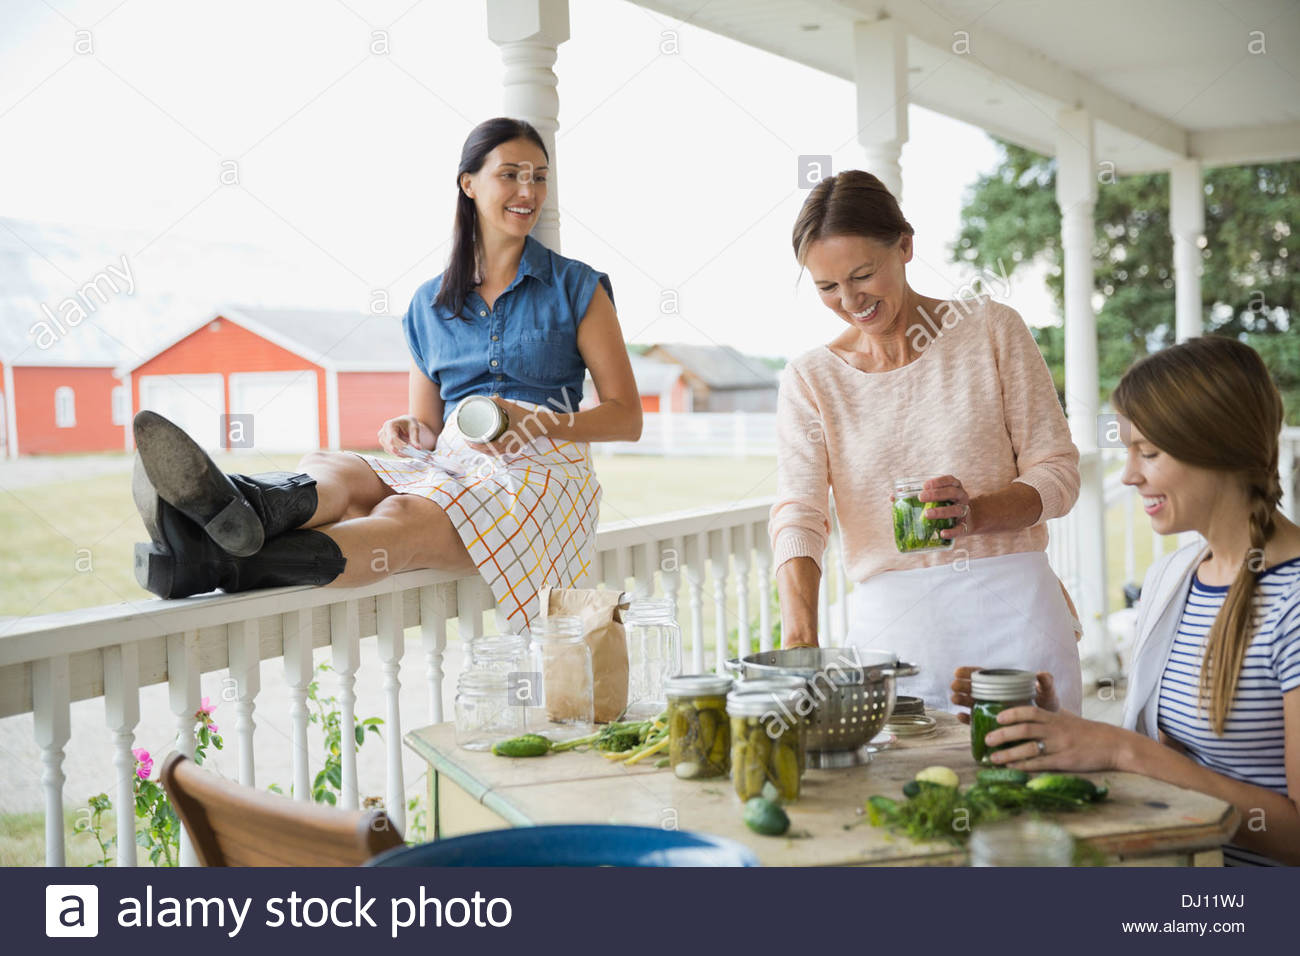 Female family members canning vegetables - Stock Image